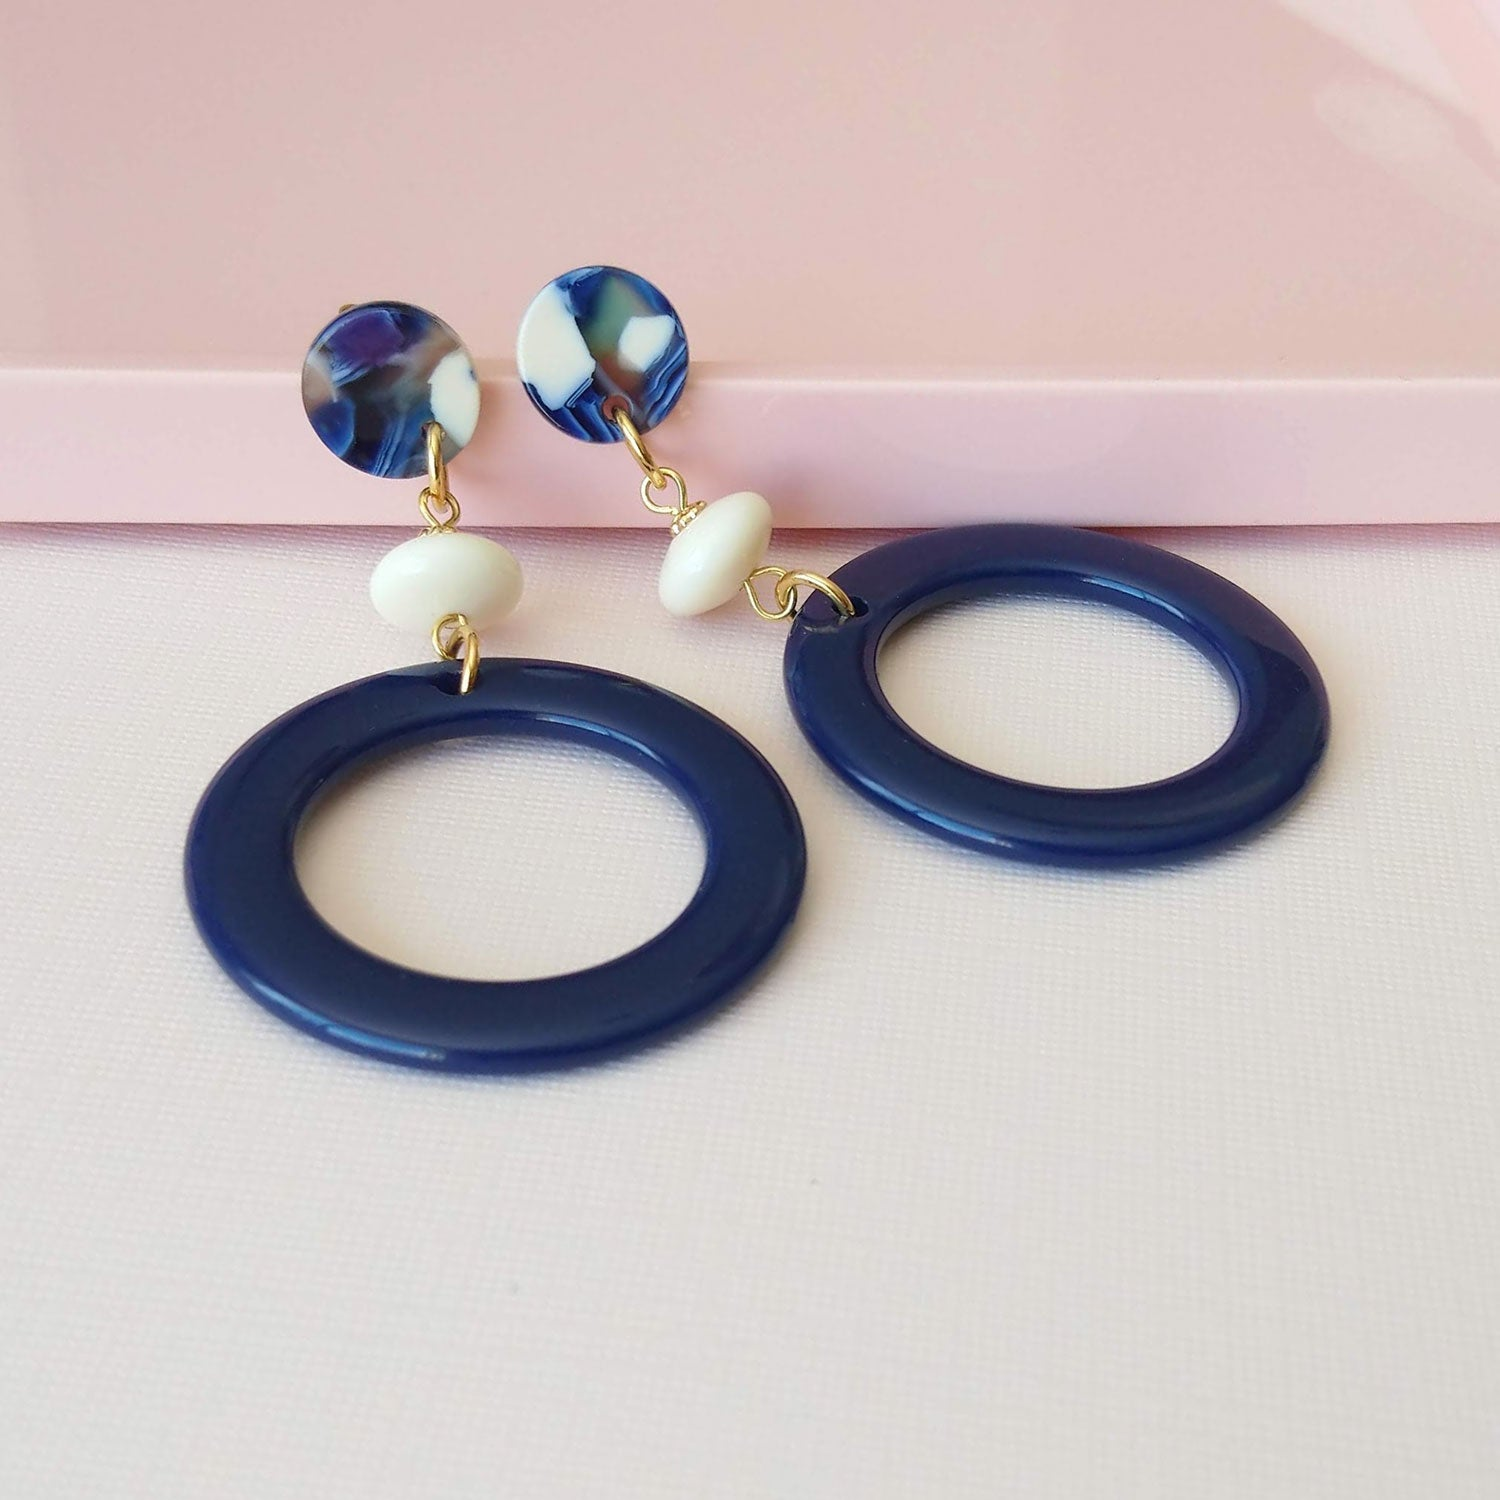 hoop earrings navy cream acetate vintage beads